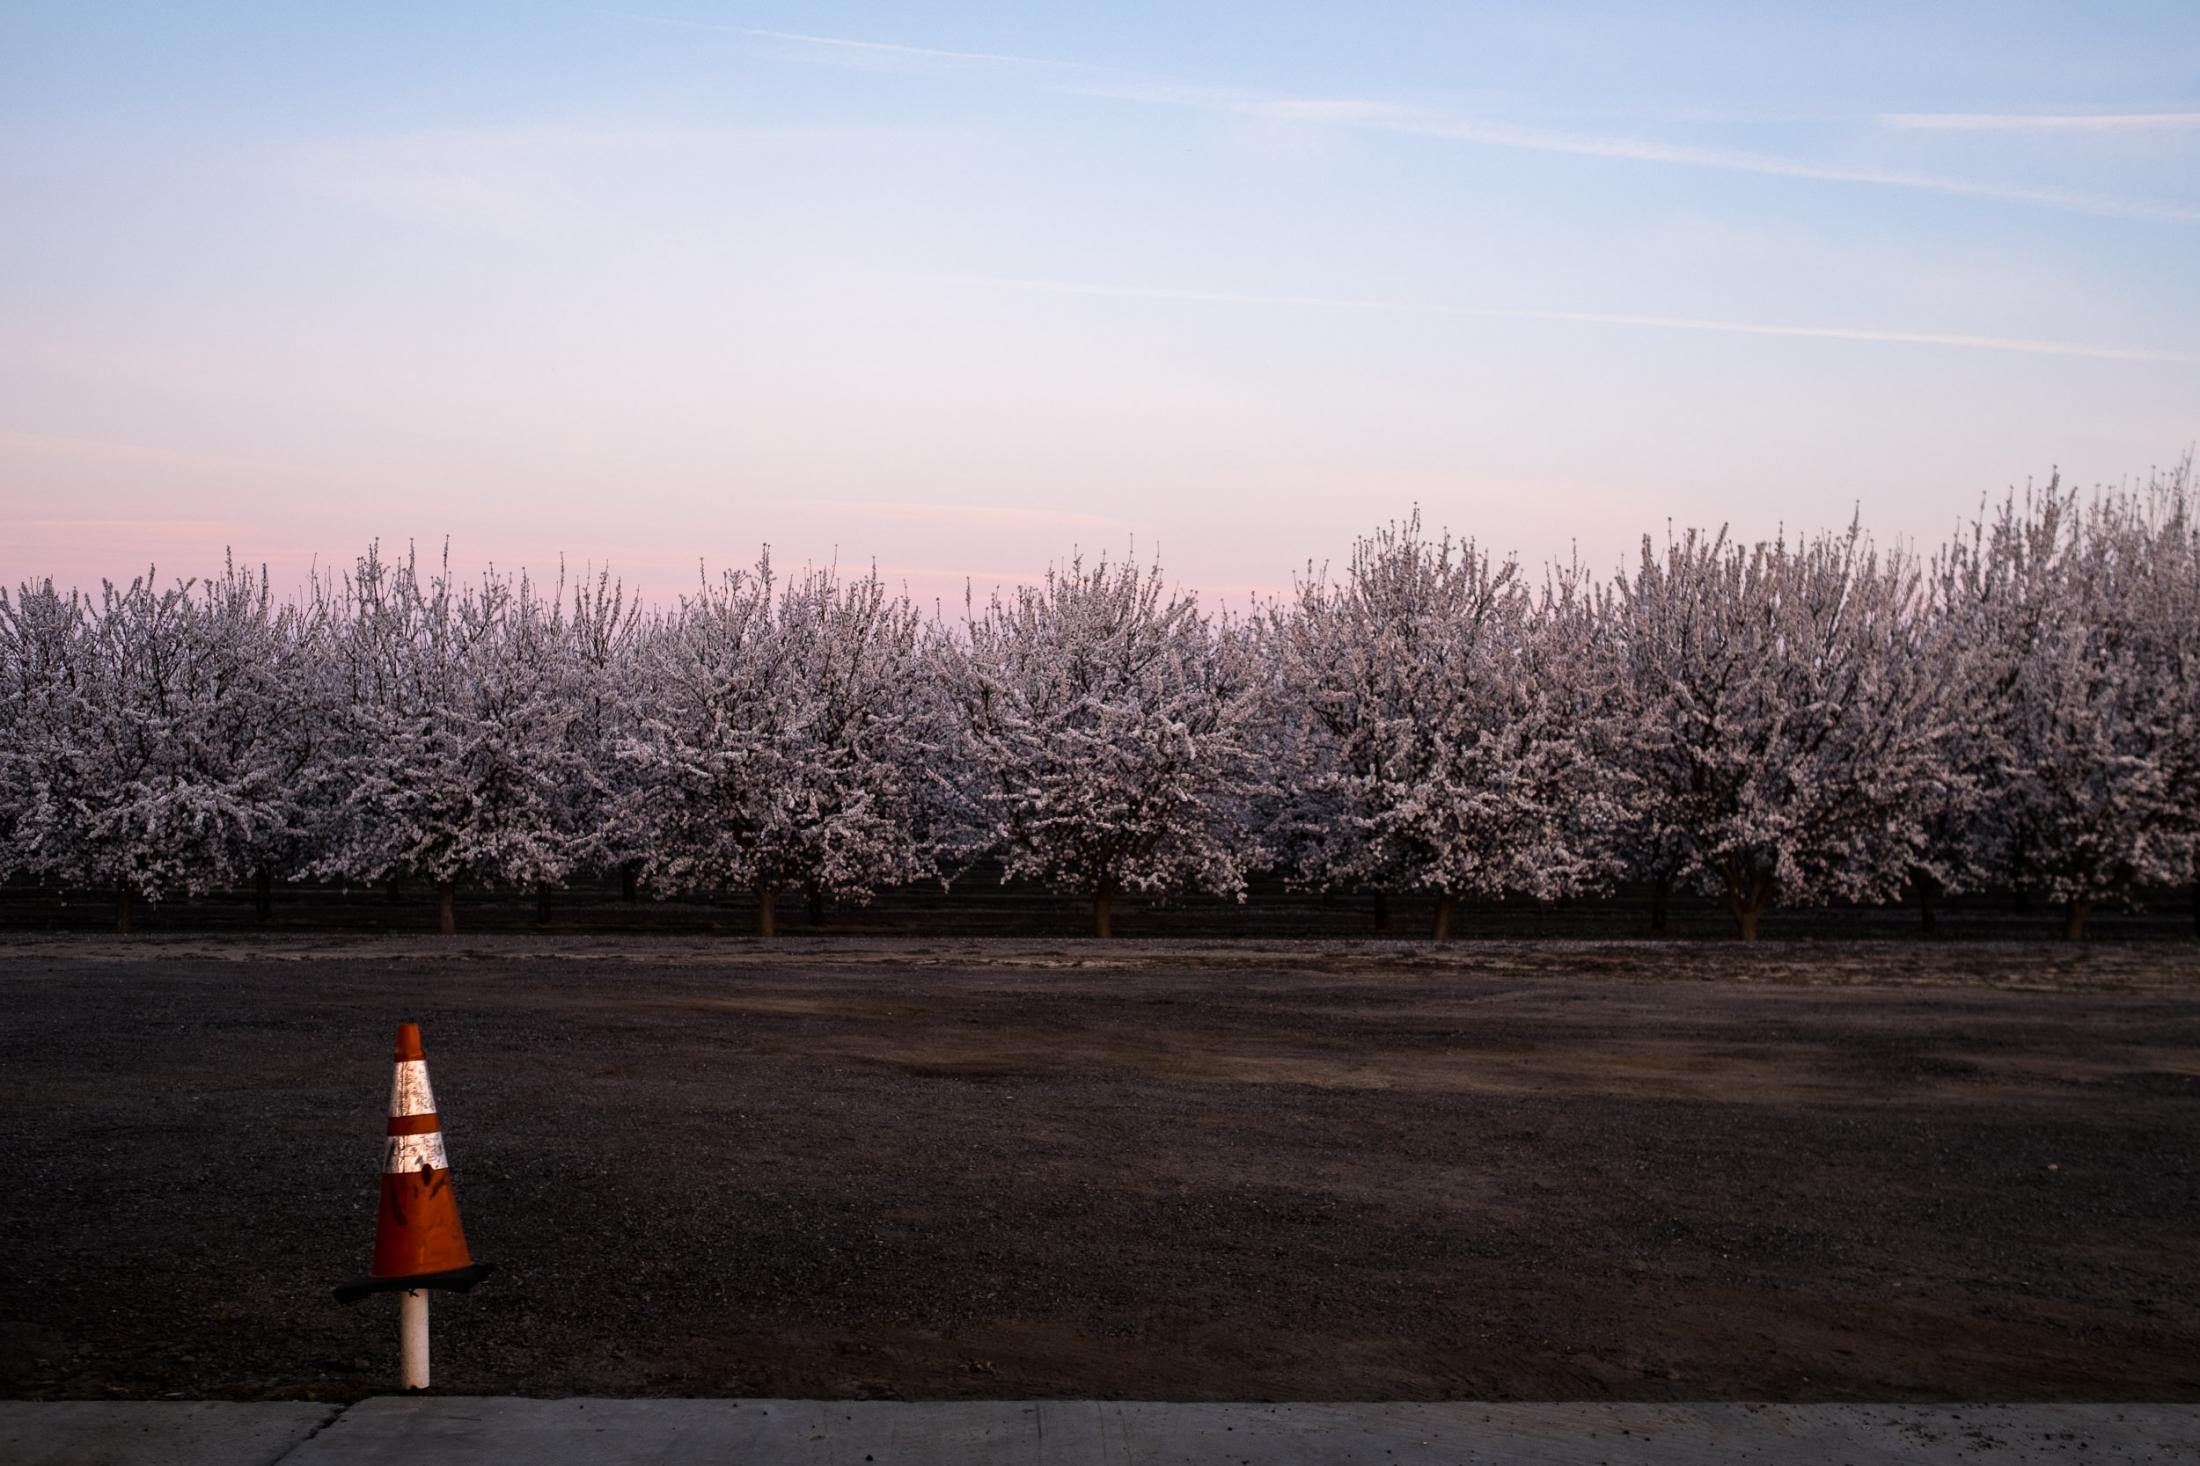 7. Almond tress at sunset. Central valley feb 2016